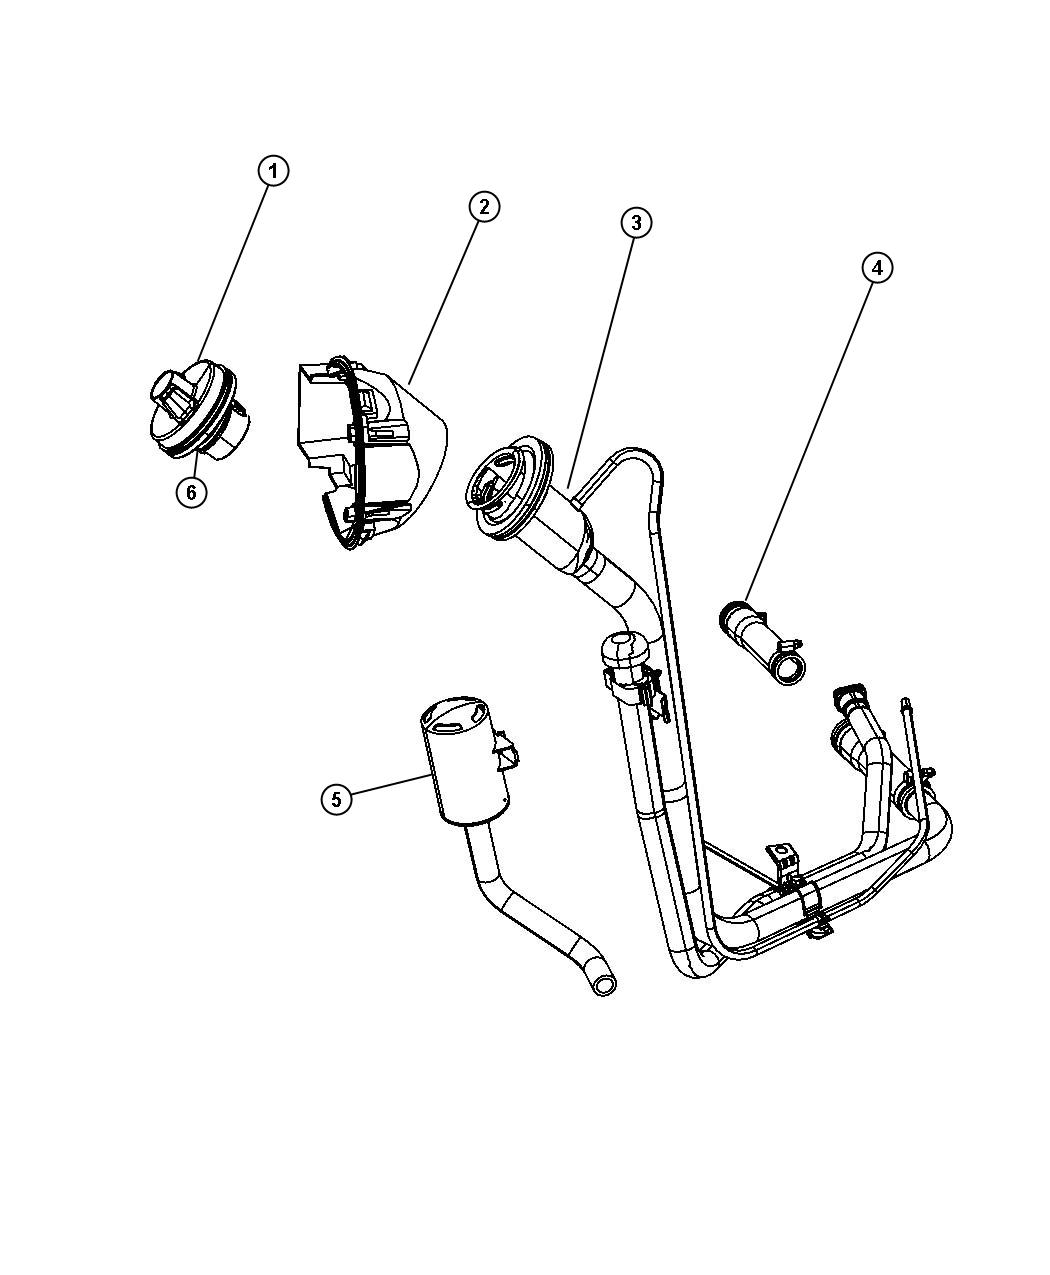 2012 jeep liberty fuel tank parts diagram